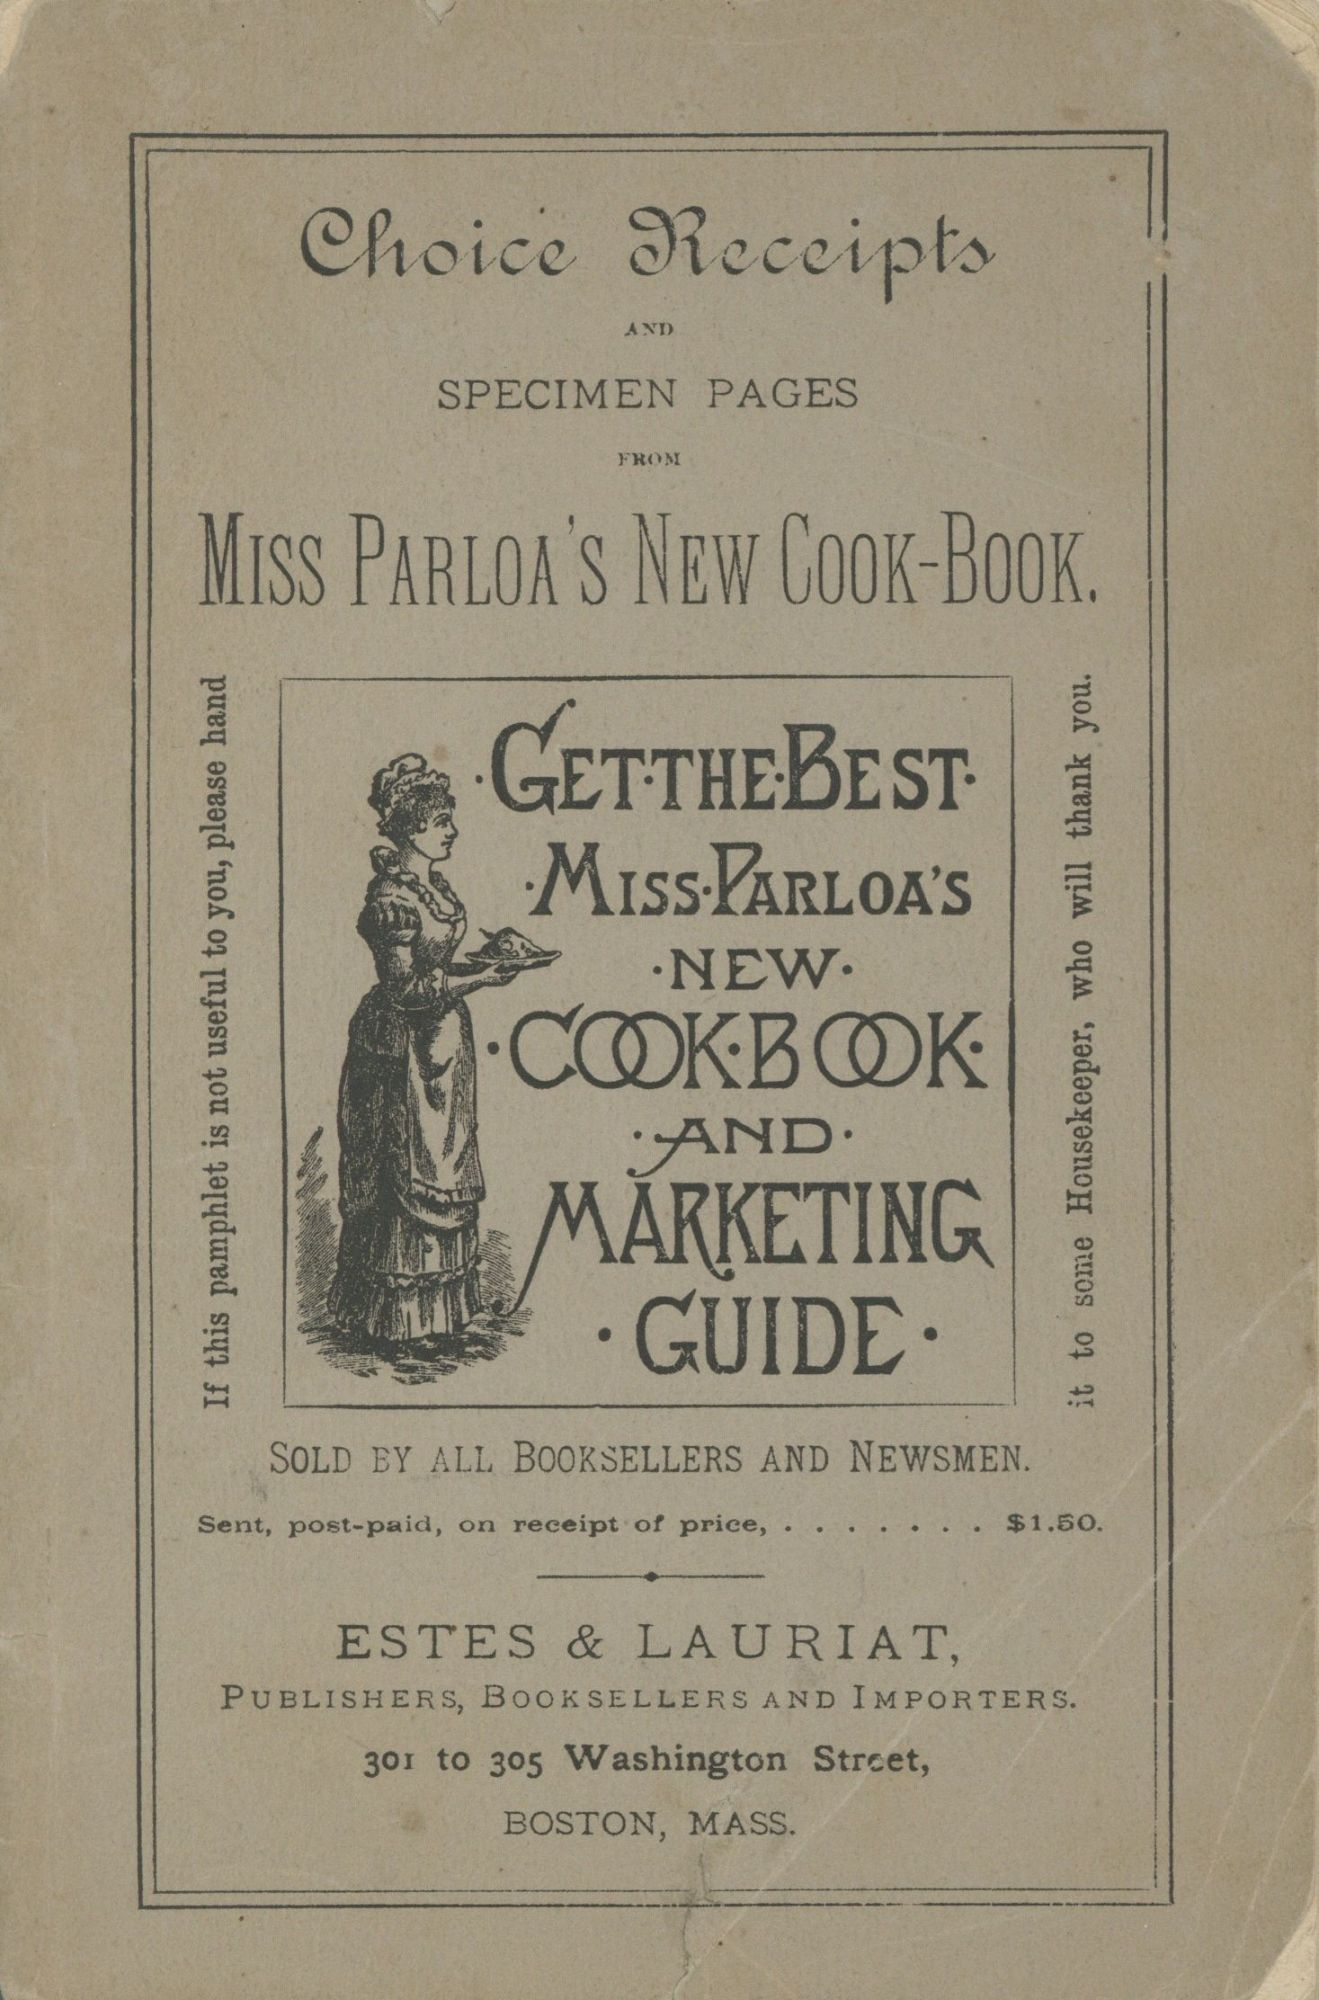 Choice Receipts and Specimen Pages from Miss Parloa's New Cook Book. Sold by all Booksellers and Newsmen. Parloa, Maria.